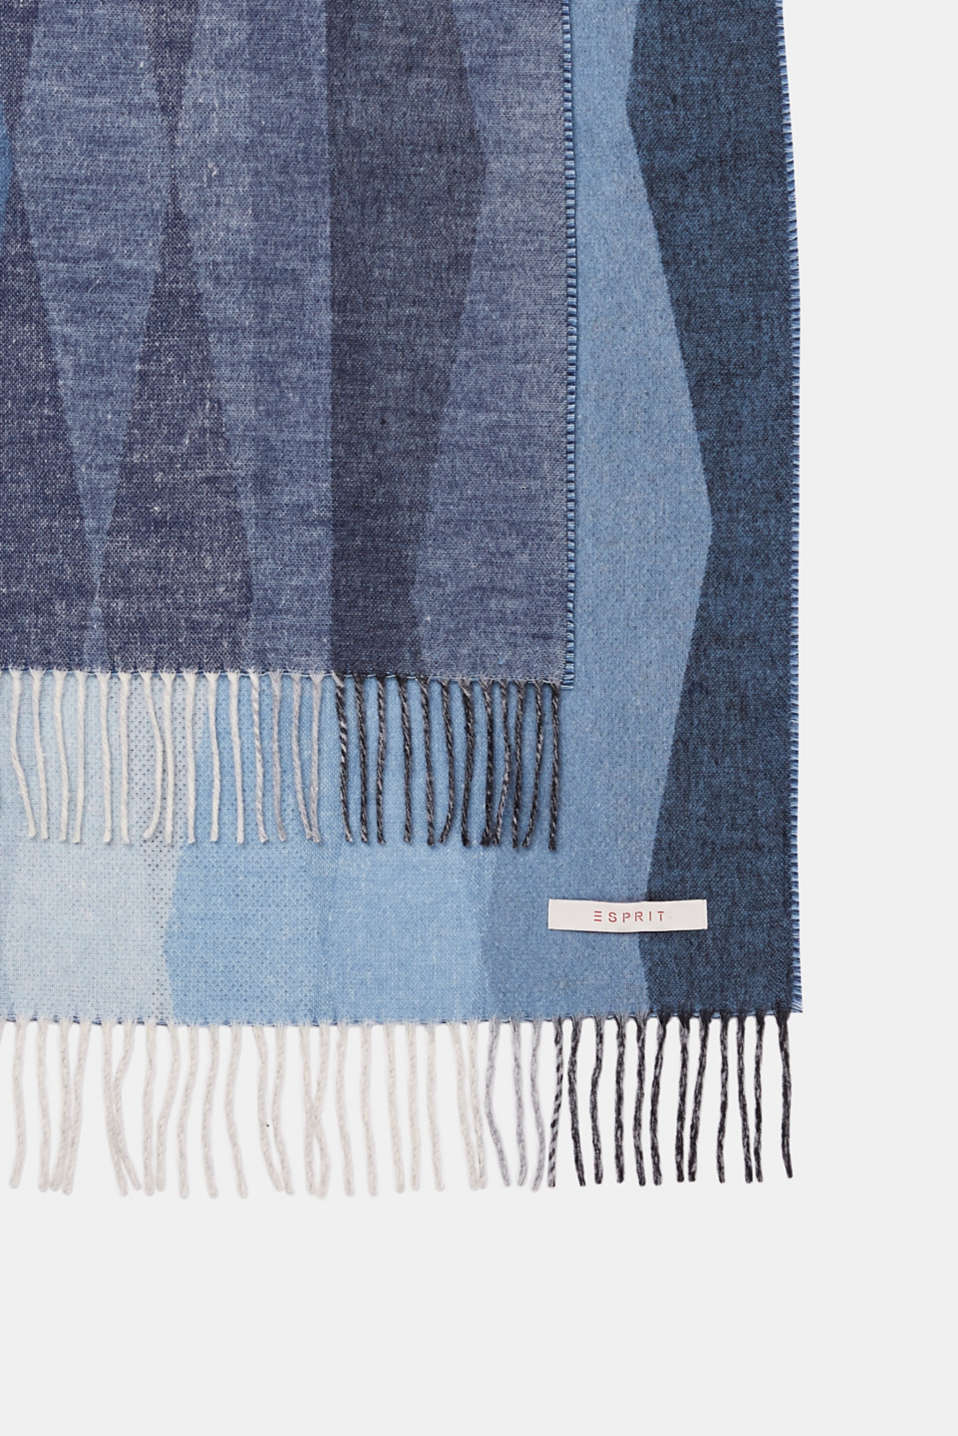 Throw with a graphic striped look, GREY/BLUE, detail image number 1